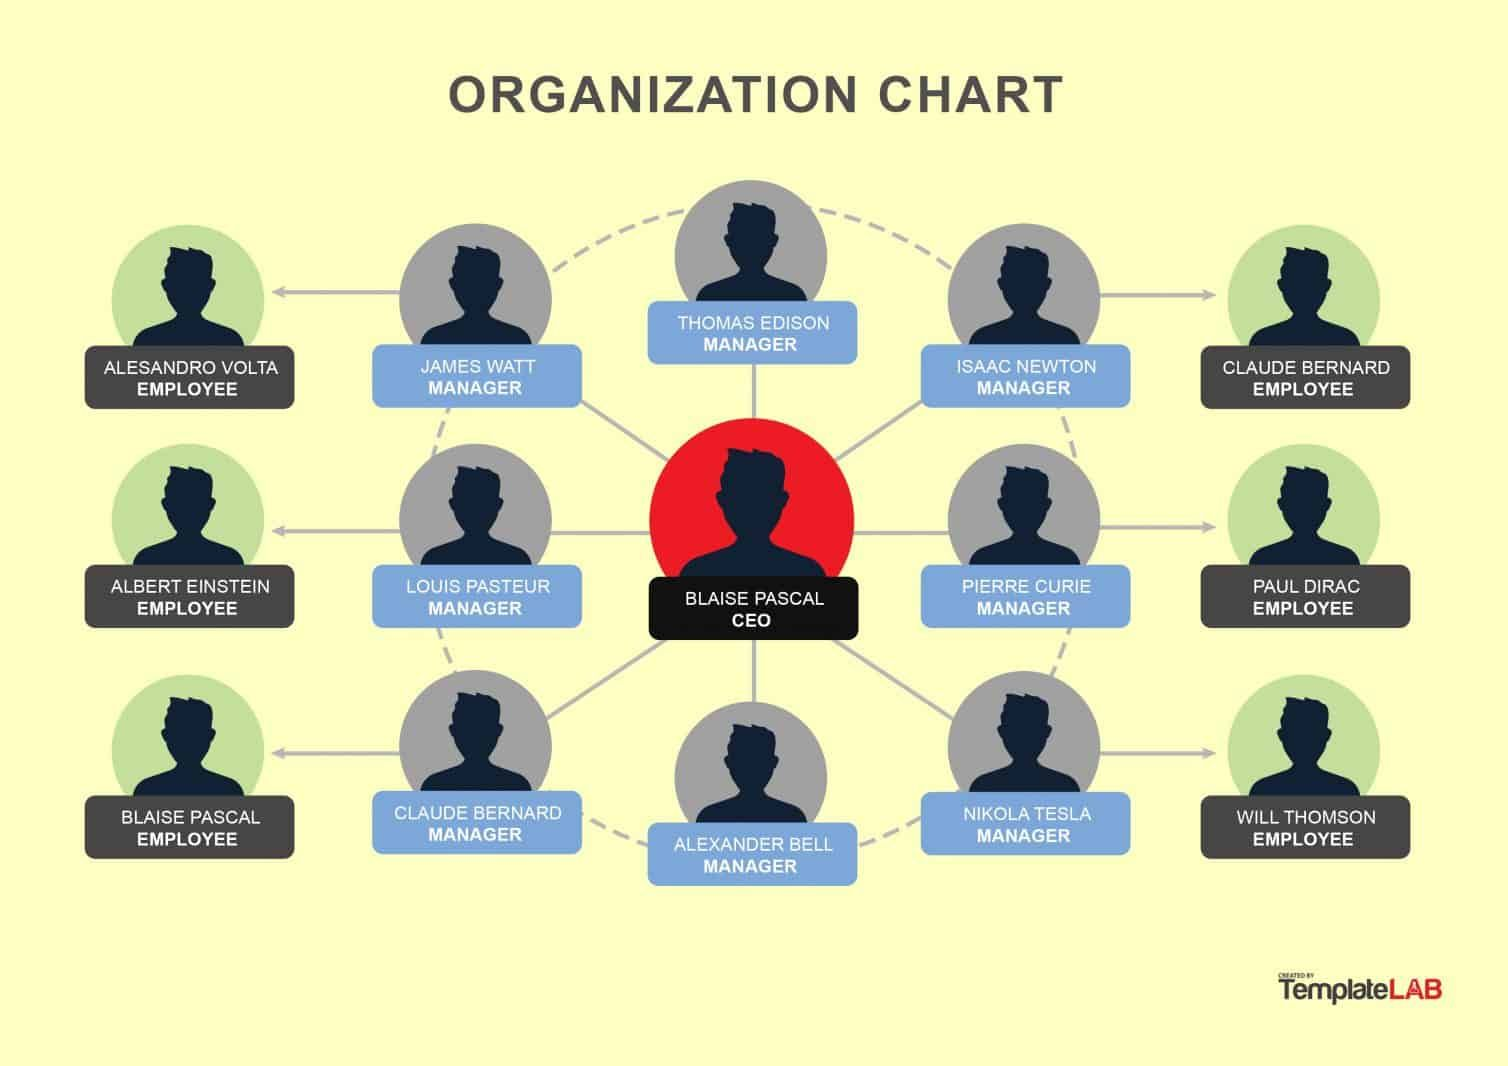 40 Organizational Chart Templates (Word, Excel, Powerpoint ...